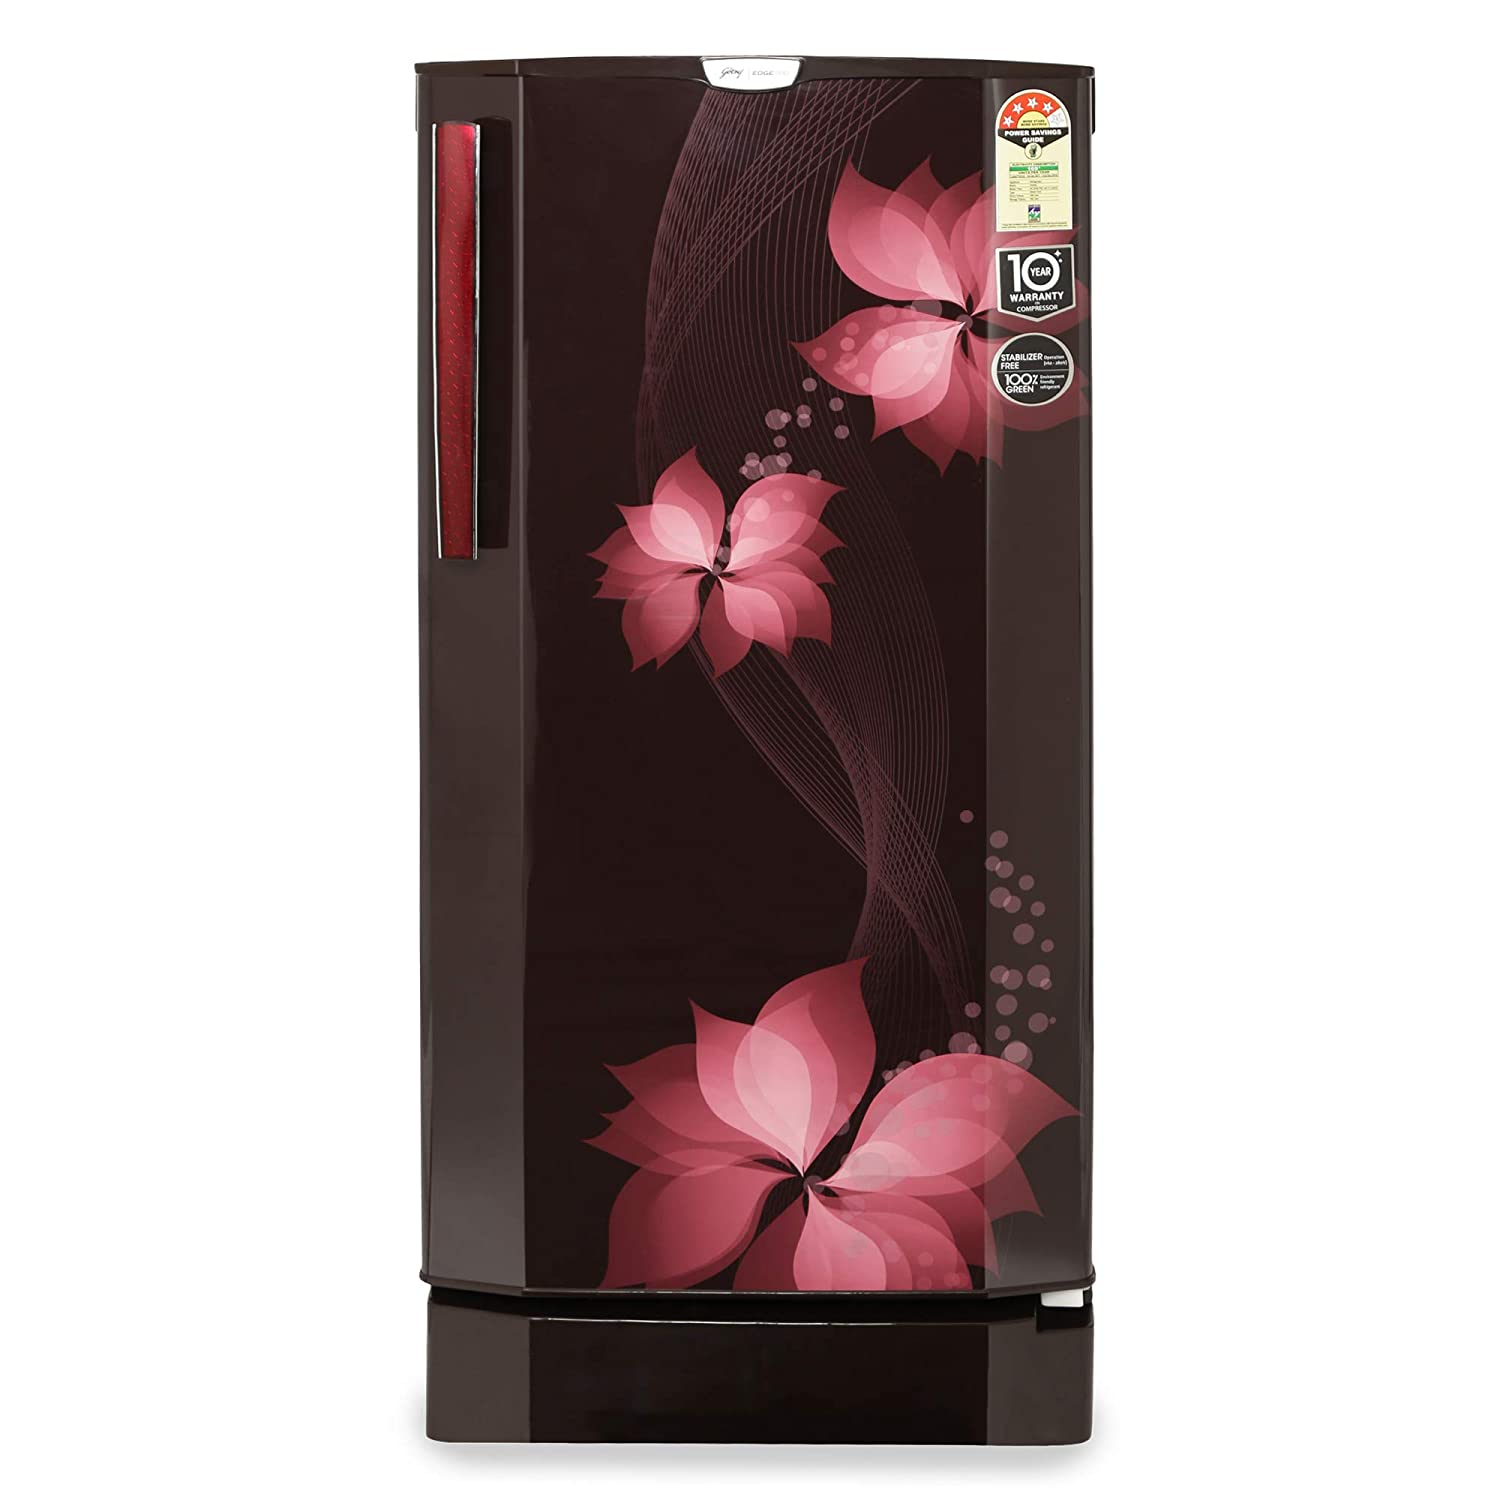 Godrej 190 L 4 Star Direct-Cool Single-Door Refrigerator (R